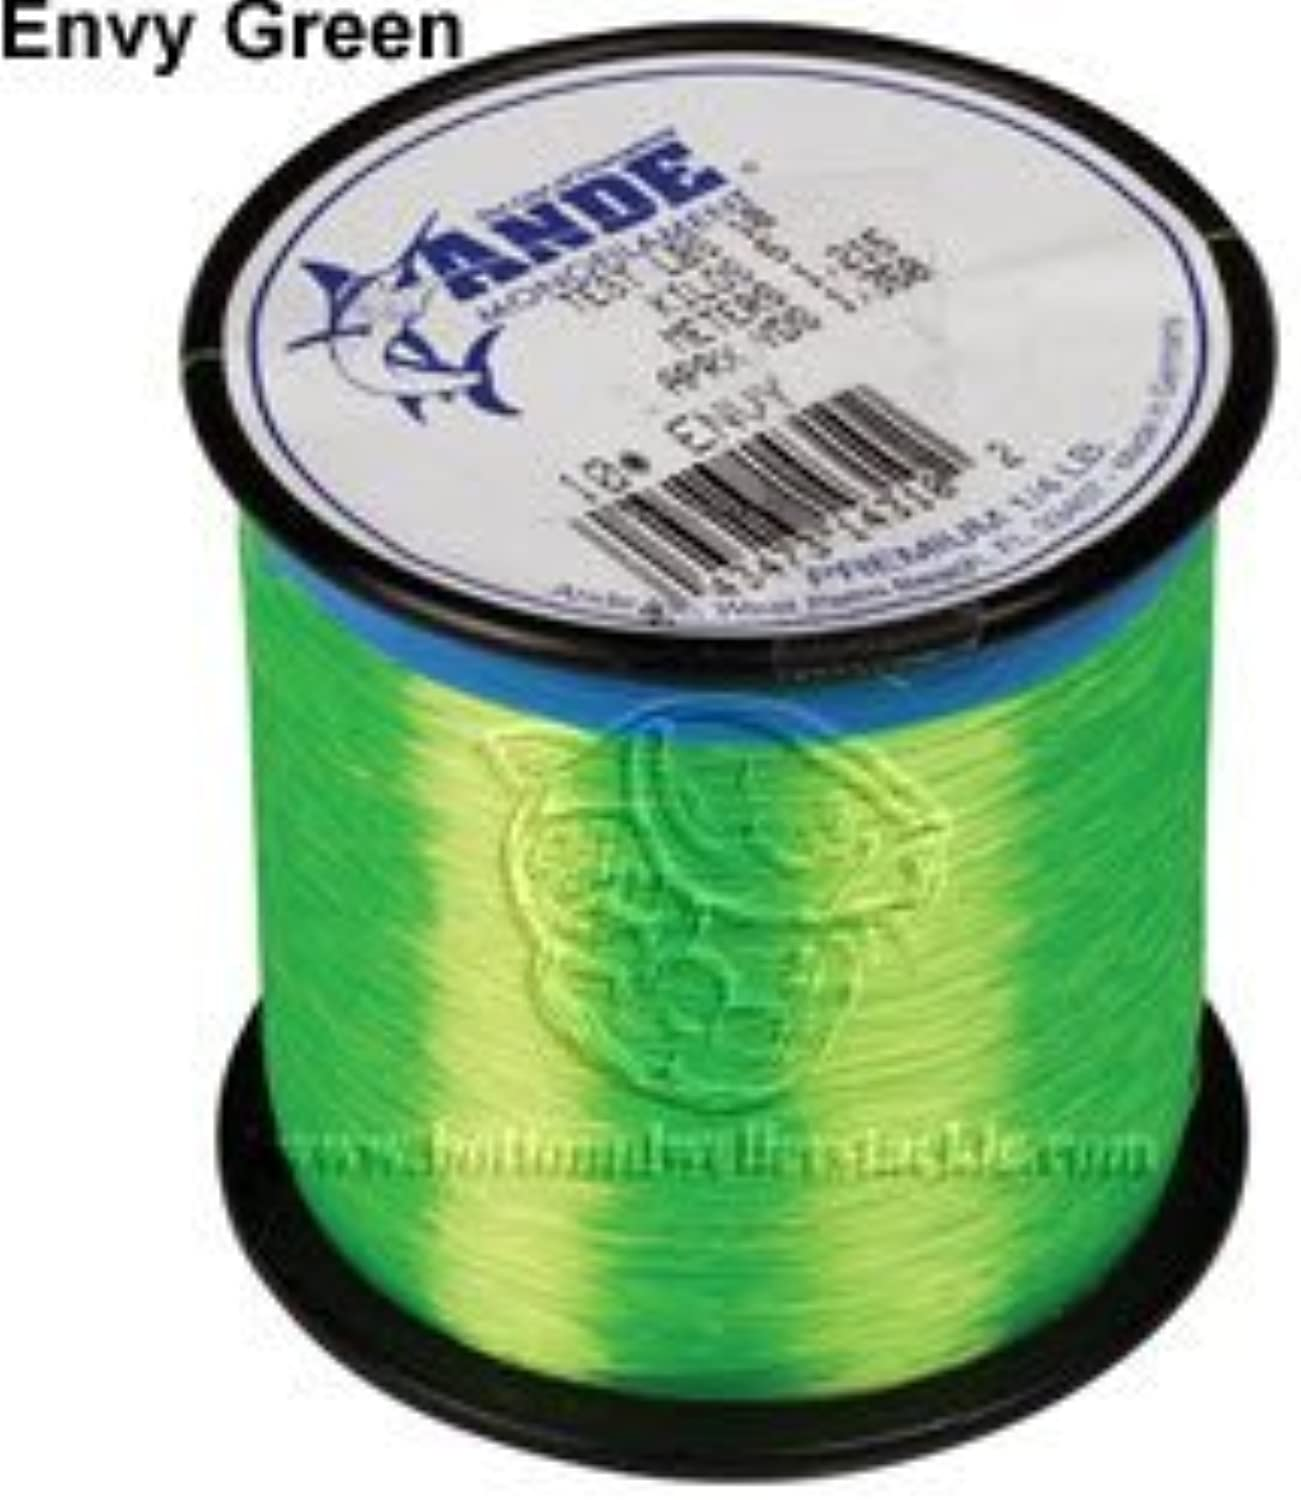 ande a140ge premium monofilament, 1pound spool, 40pound bright green finish  test, ntmyxv3754-sporting goods